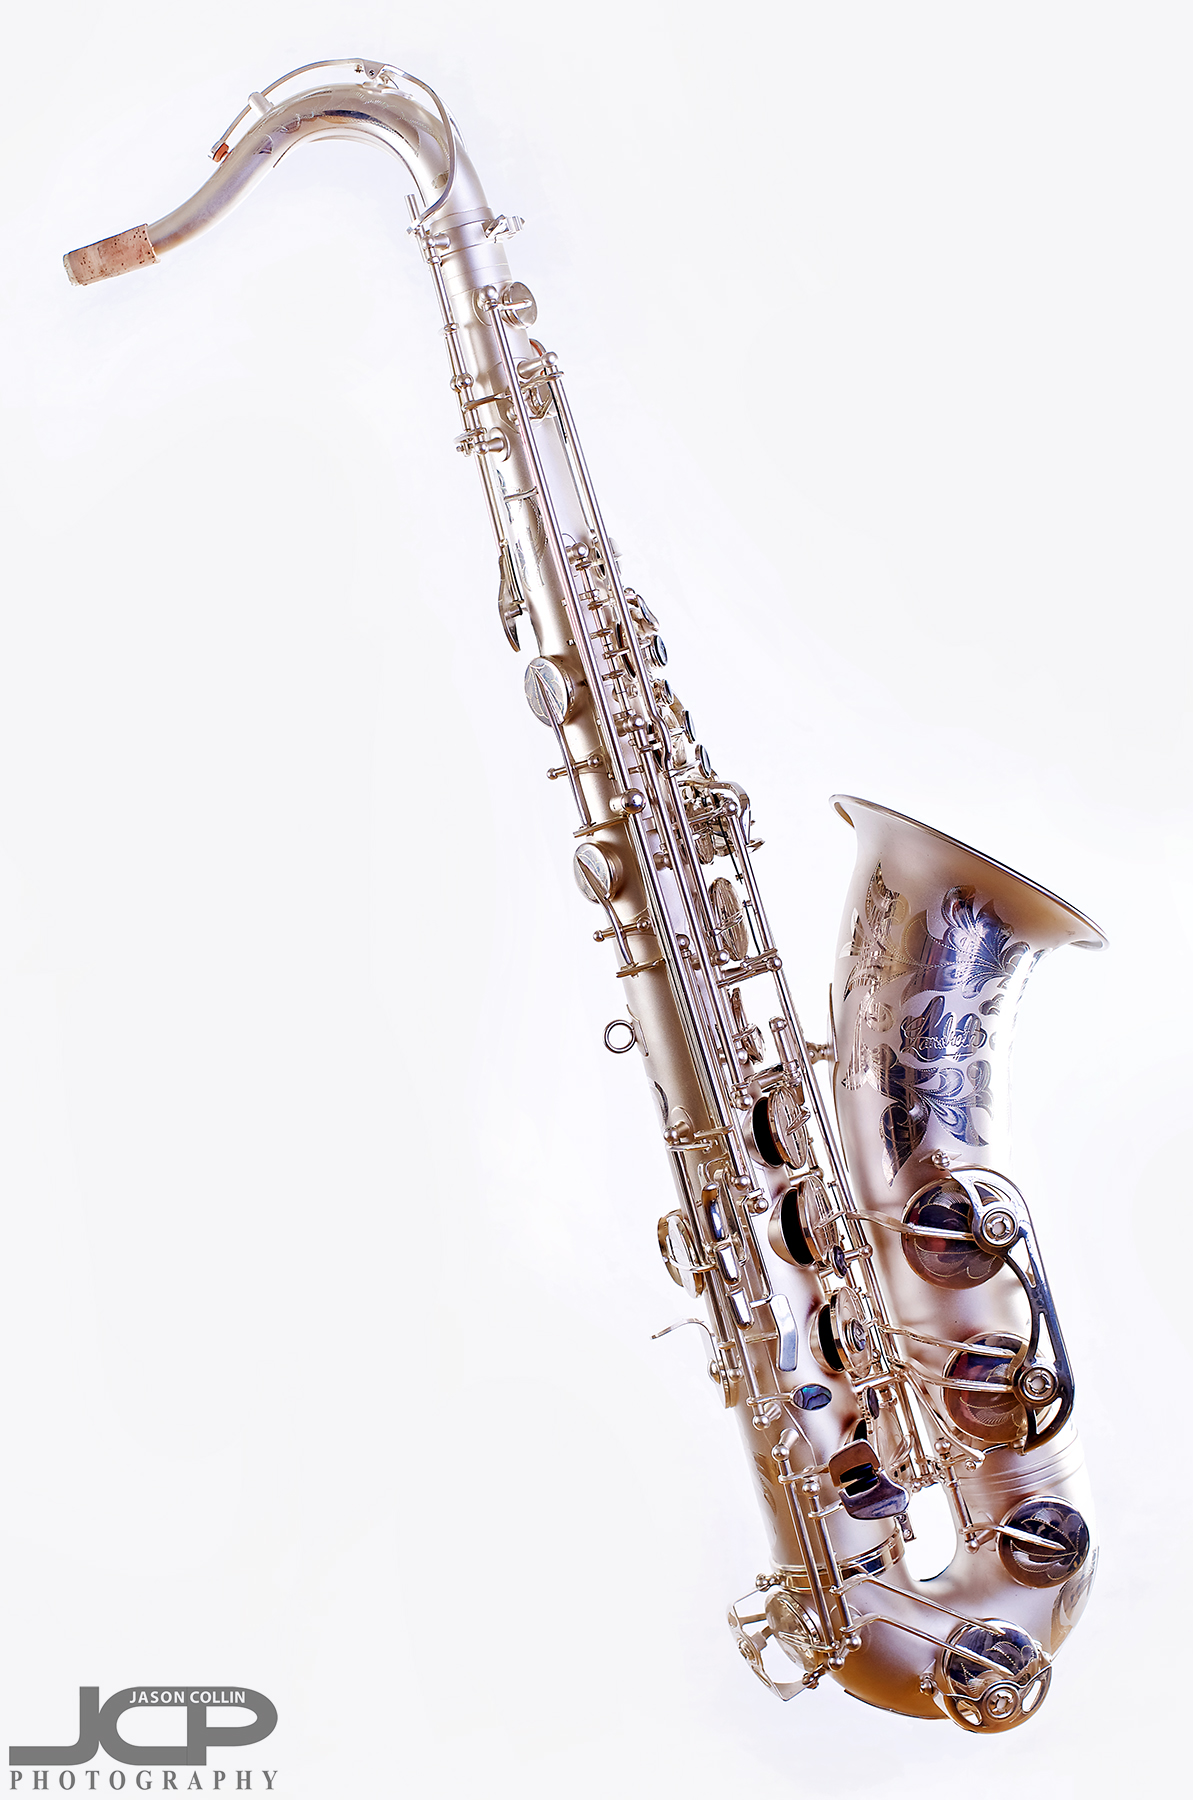 "Profile view of this saxophone with stand digitally removed - Nikon D750 with Nikkor 50mm f/1.8G lens @ f/8 1/160th ISO 100 - Strobist: Westcott Strobe Light Plus in 55"" octagon gridded soft box main with two 43"" shoot through umbrellas with speedlights on the white muslin background"